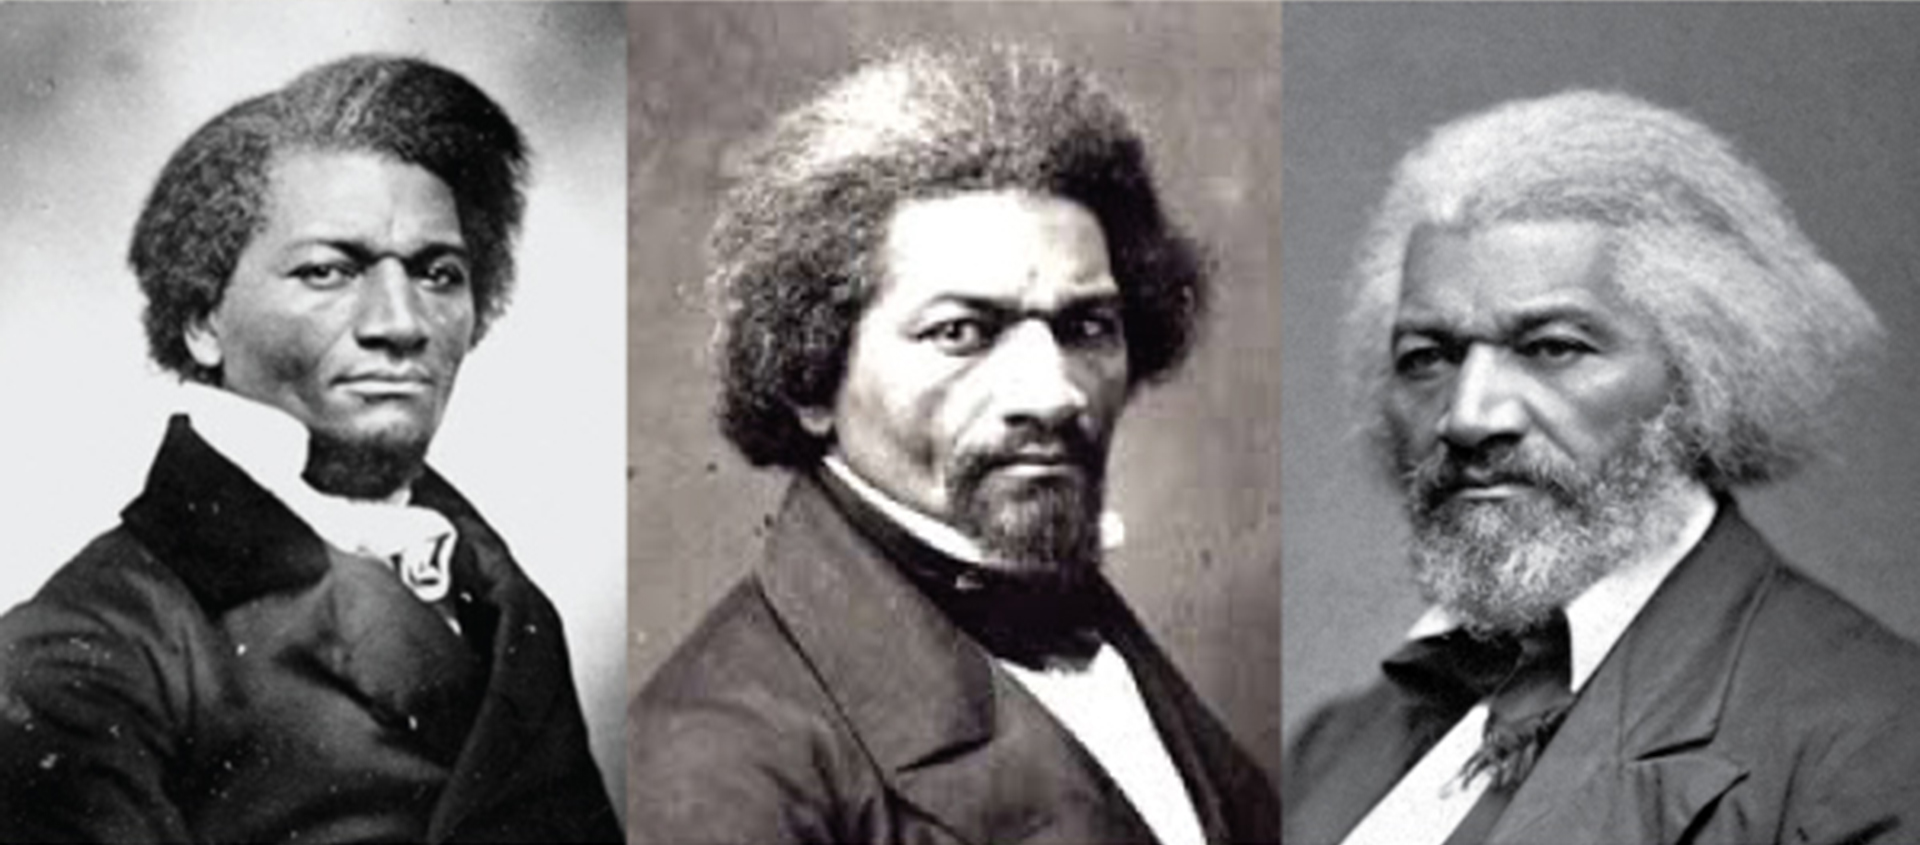 fredrick douglass 244 quotes from frederick douglass: 'once you learn to read, you will be forever free', 'it is easier to build strong children than to repair broken men', and 'i.